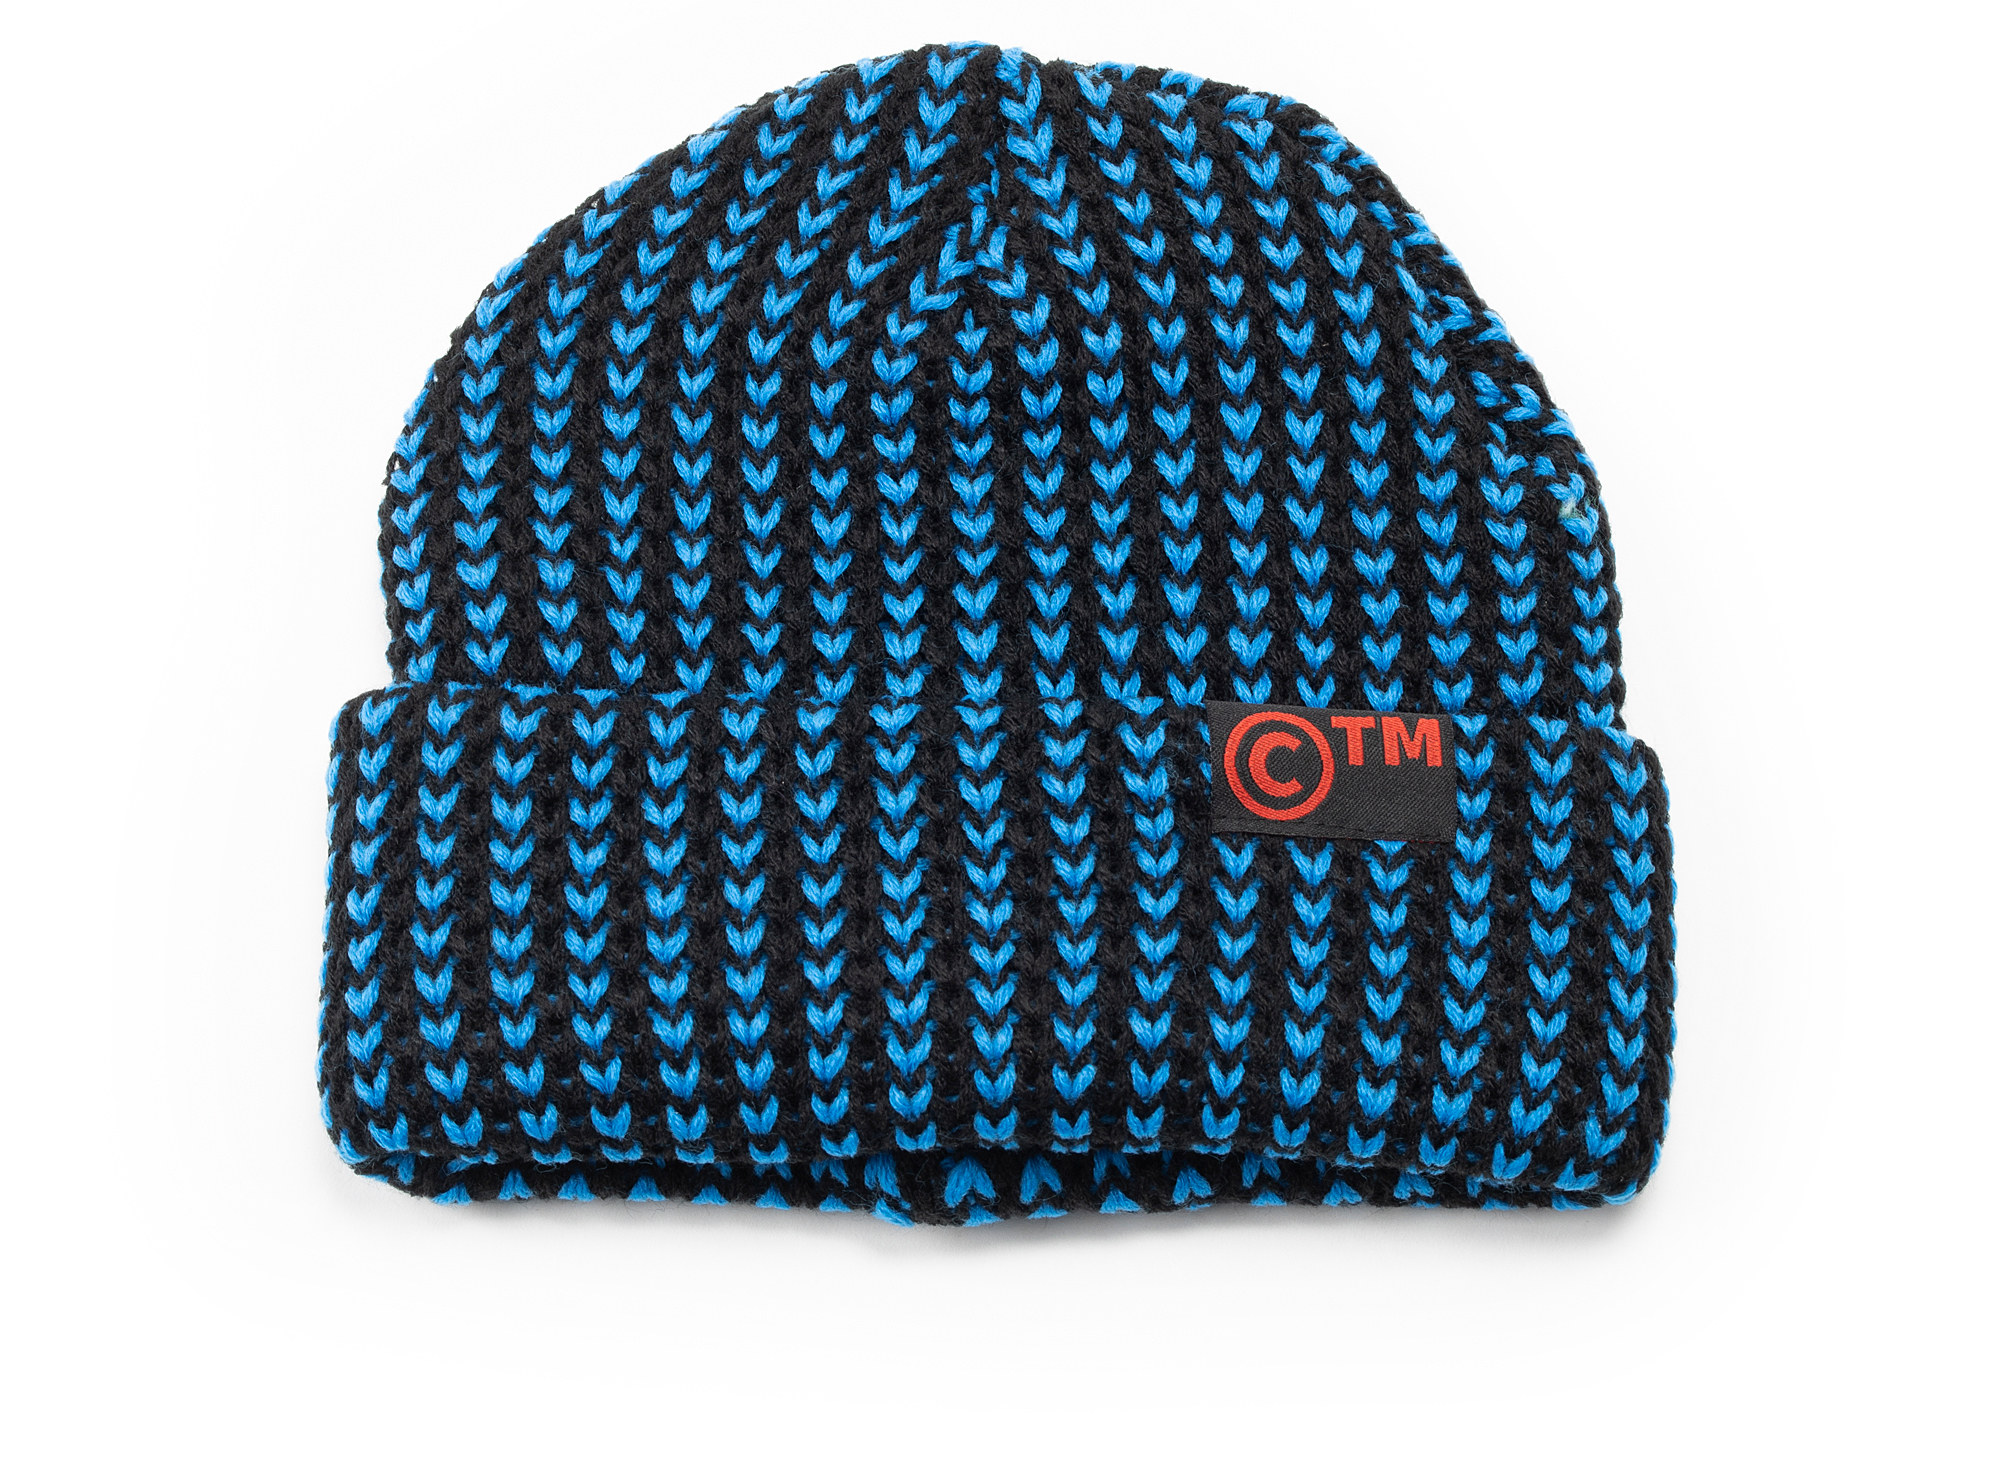 Chinatown Market CTM Knit Beanie in Blue